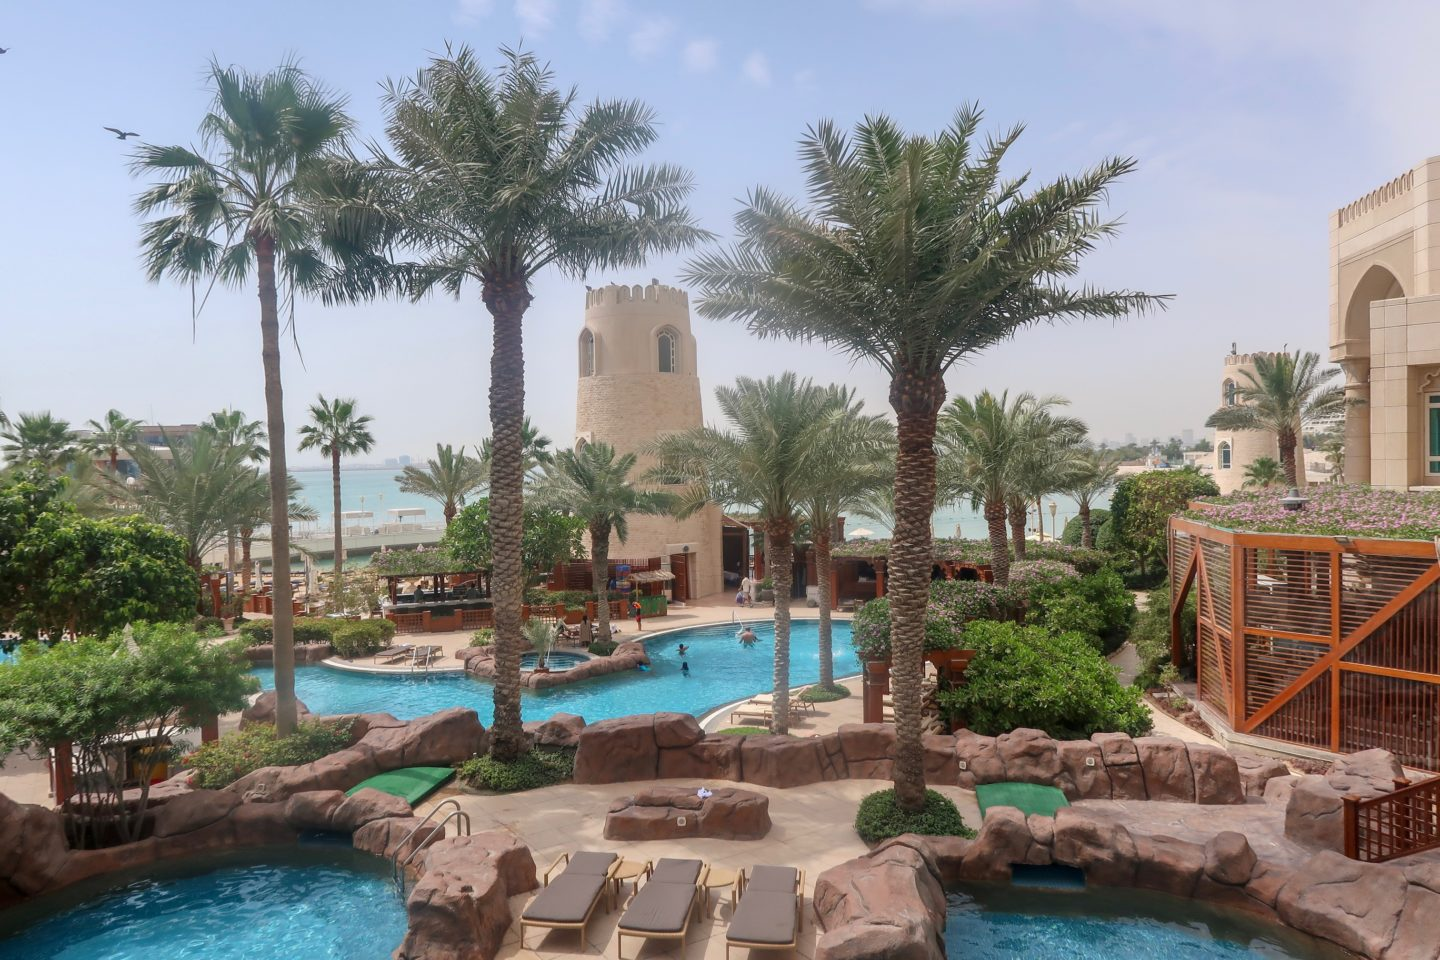 How to have an epic family holiday - the Four Seasons Doha pool complex